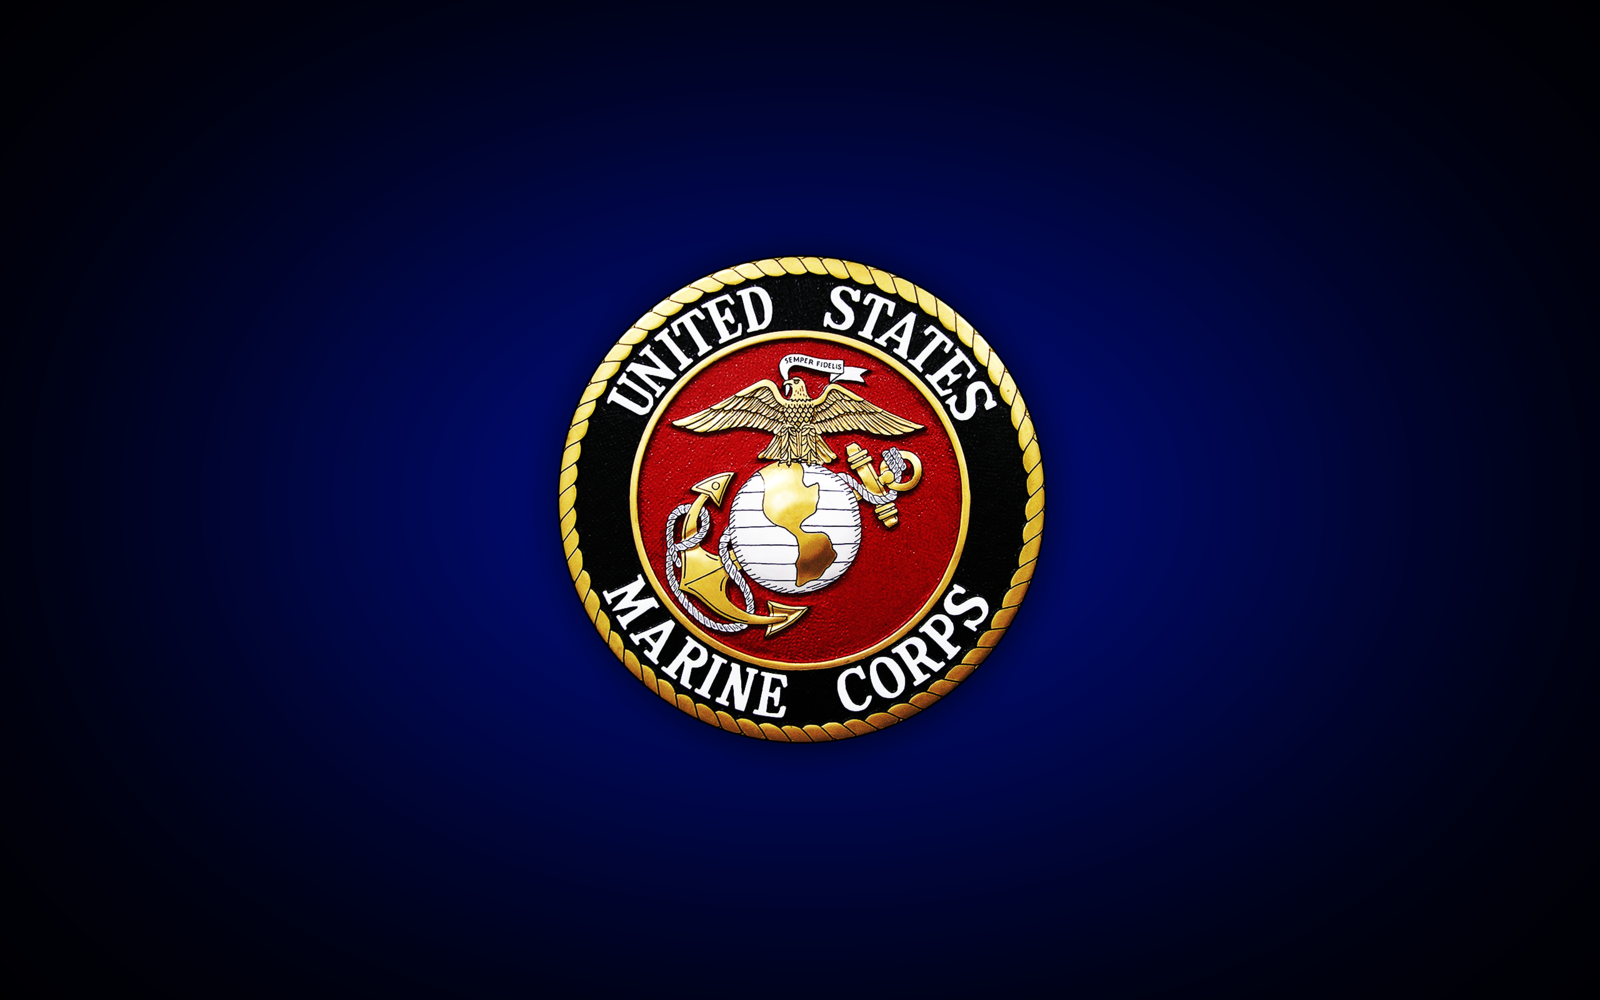 Free Download Usmc United States Marine Corps Wallpaper By